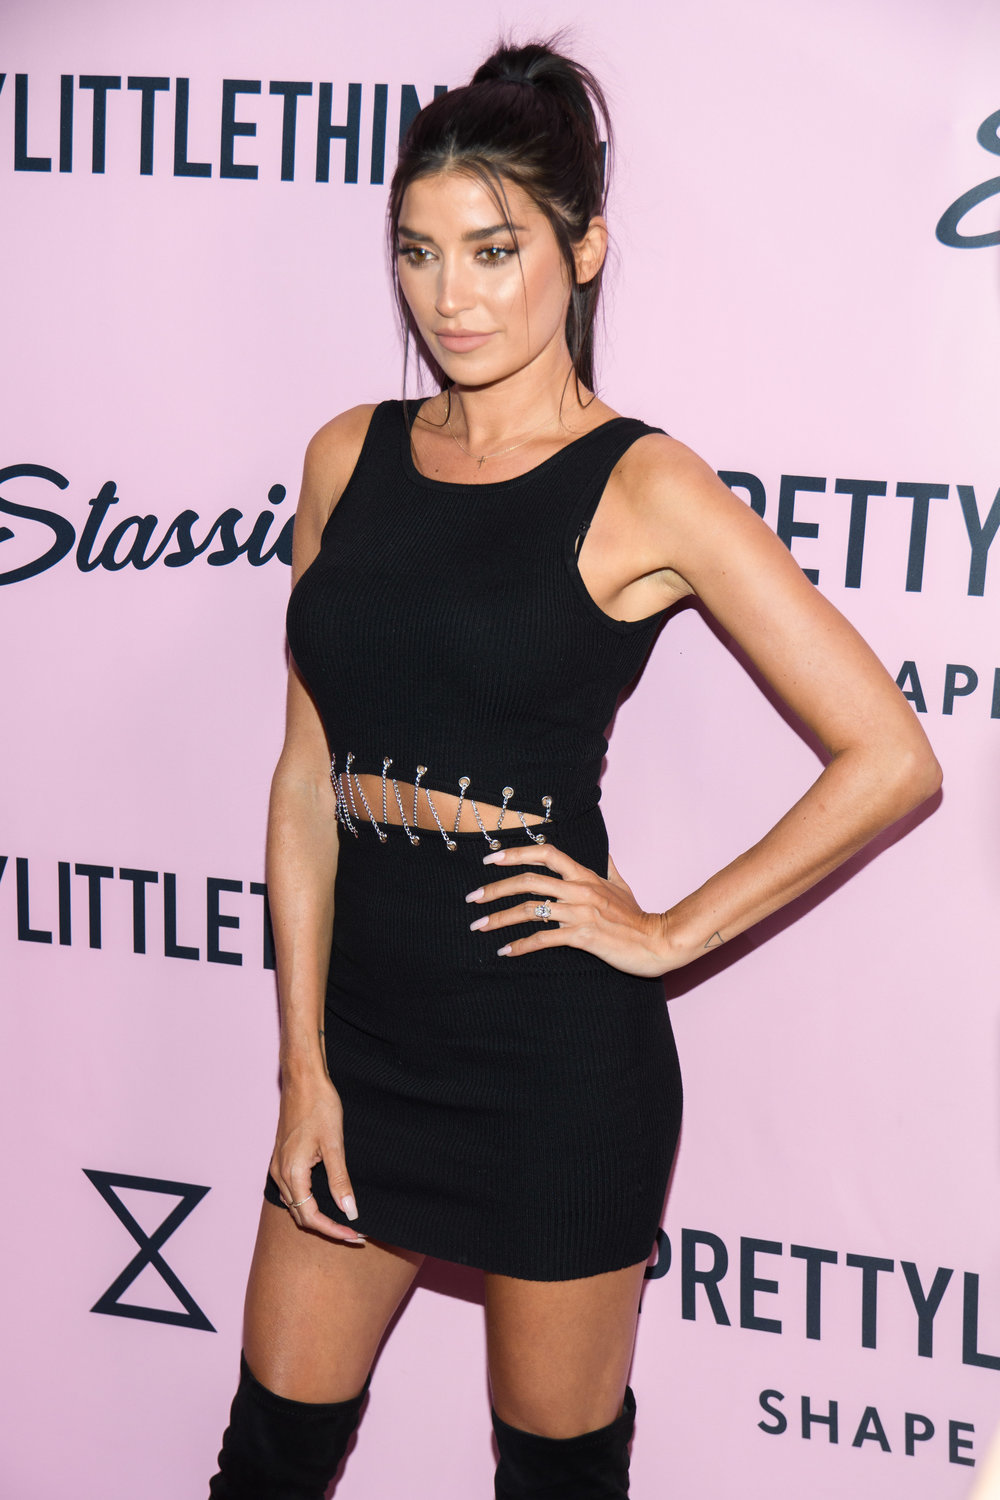 PrettyLittleThing New PLT Shape Collection with Stassie Celebrity Launch Party Nicole Williams.jpg